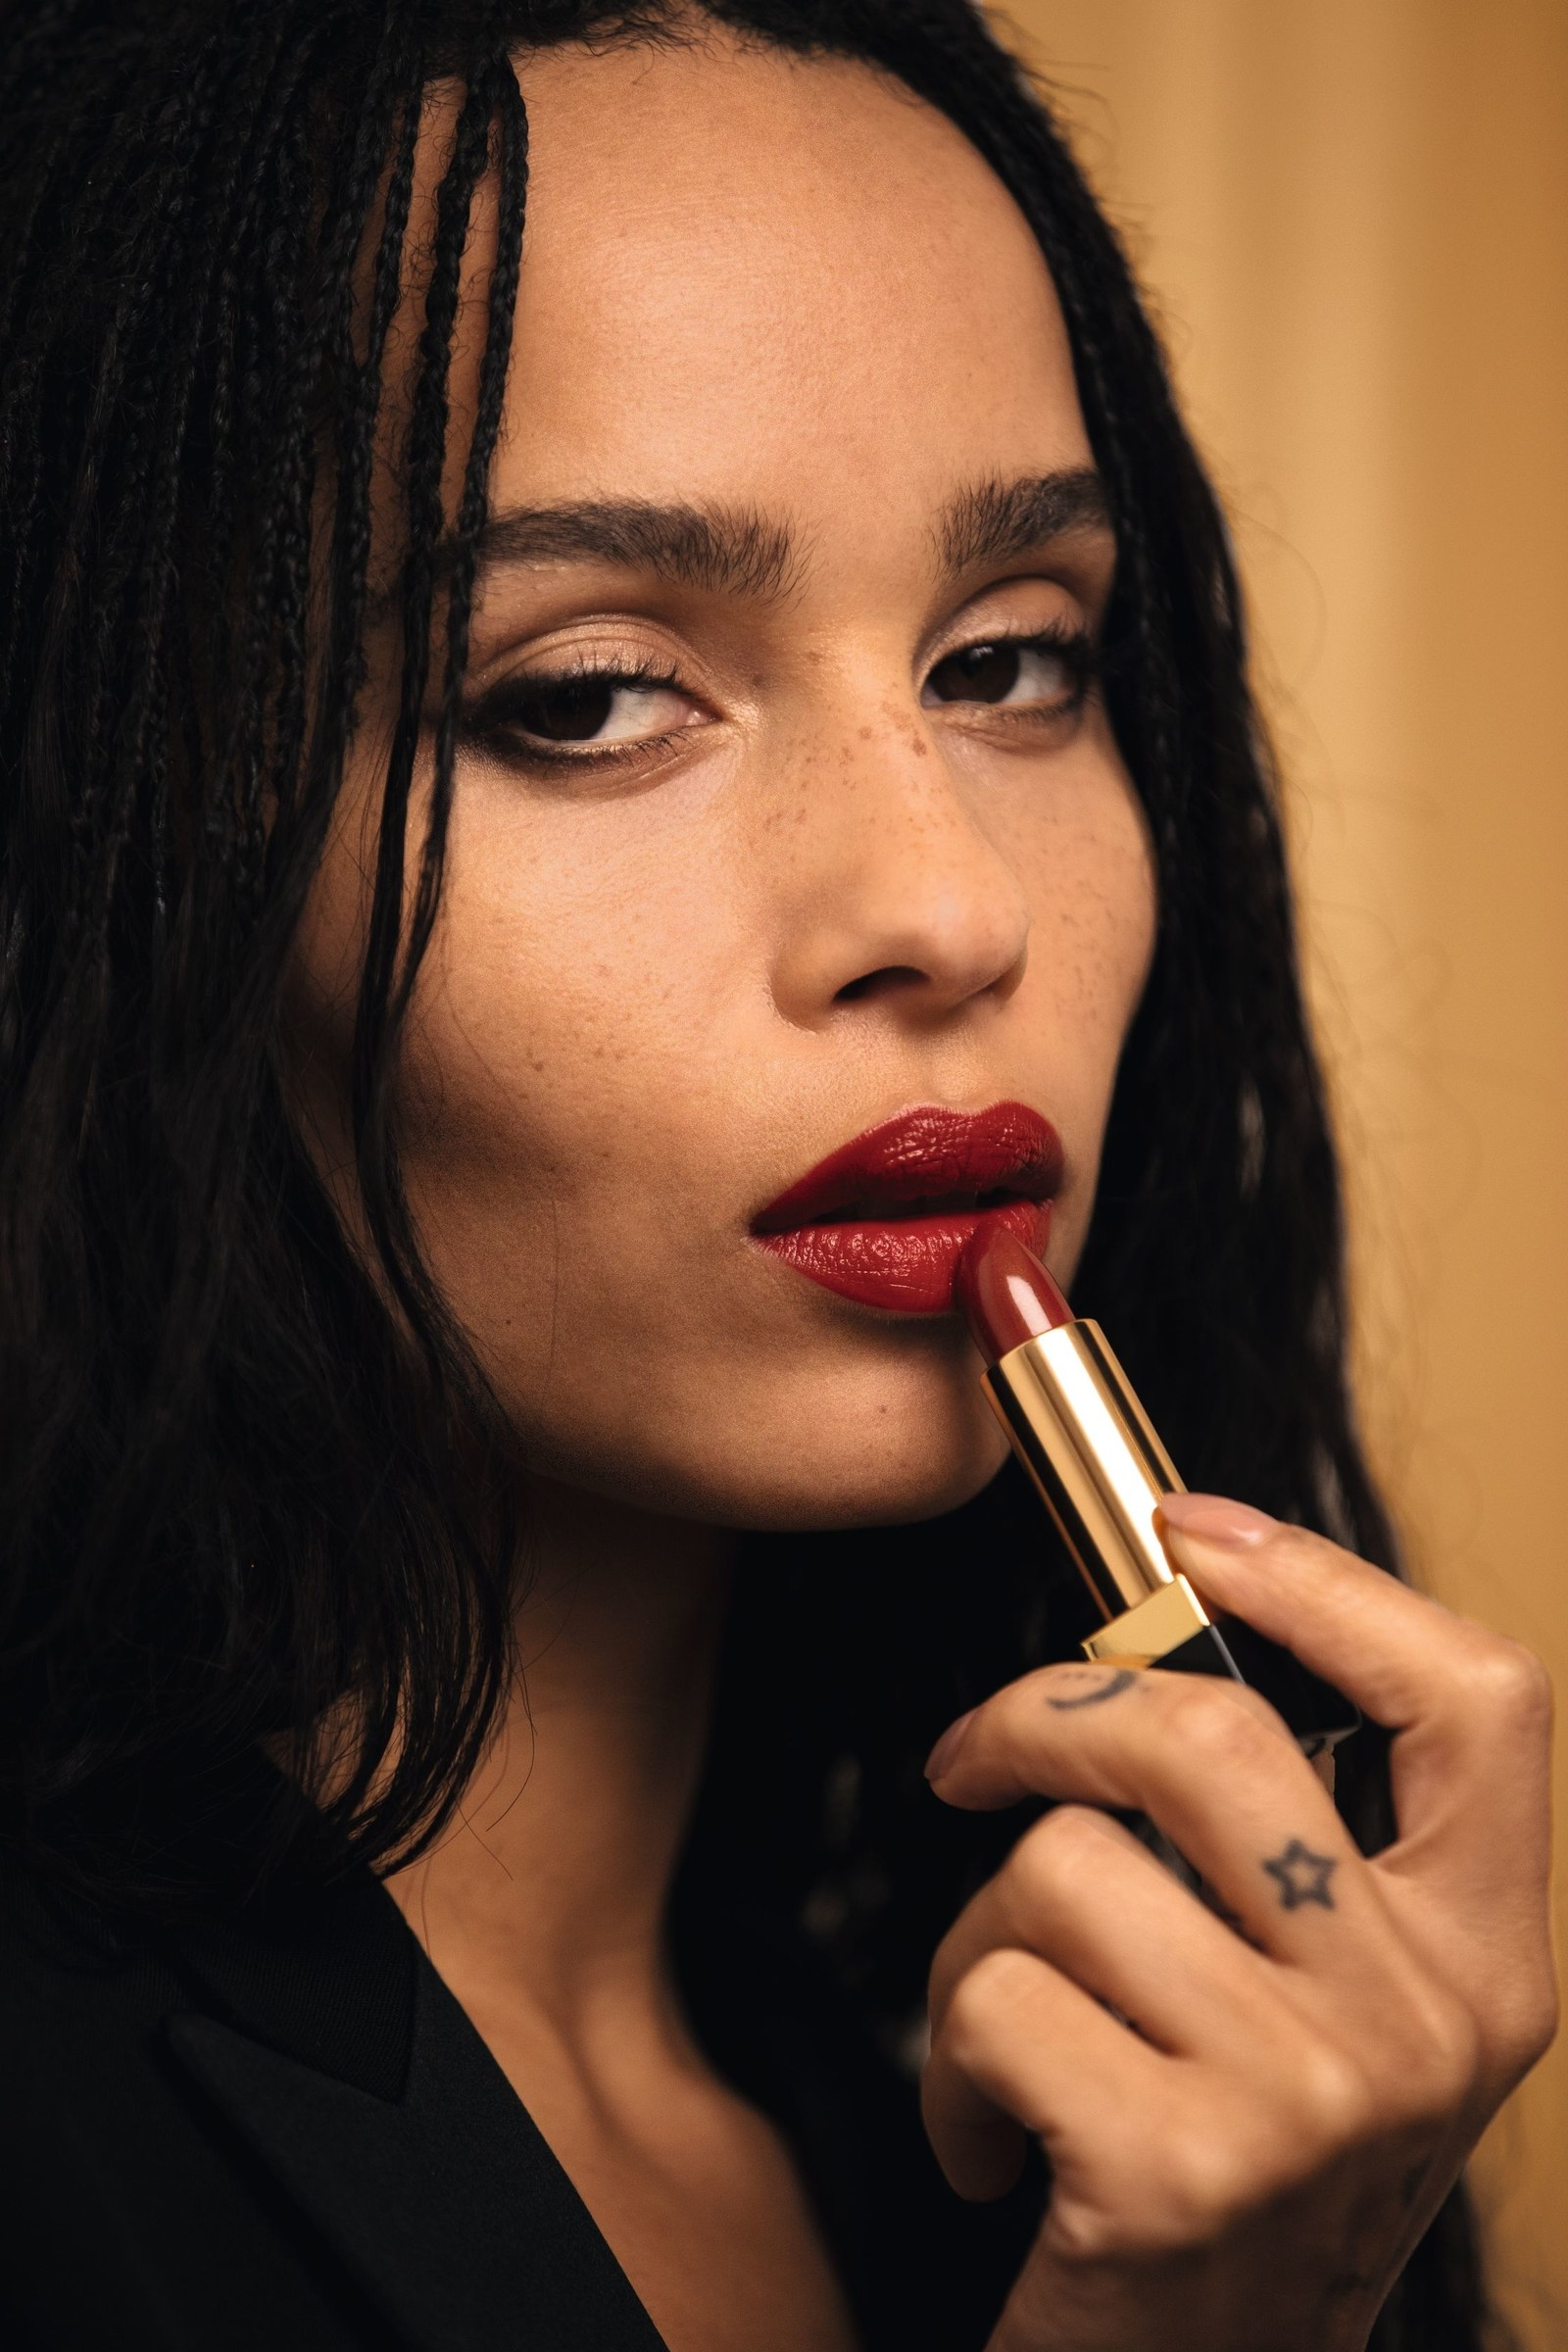 YSL-Zoë-Kravitz-Collection-Banner-03.jpg